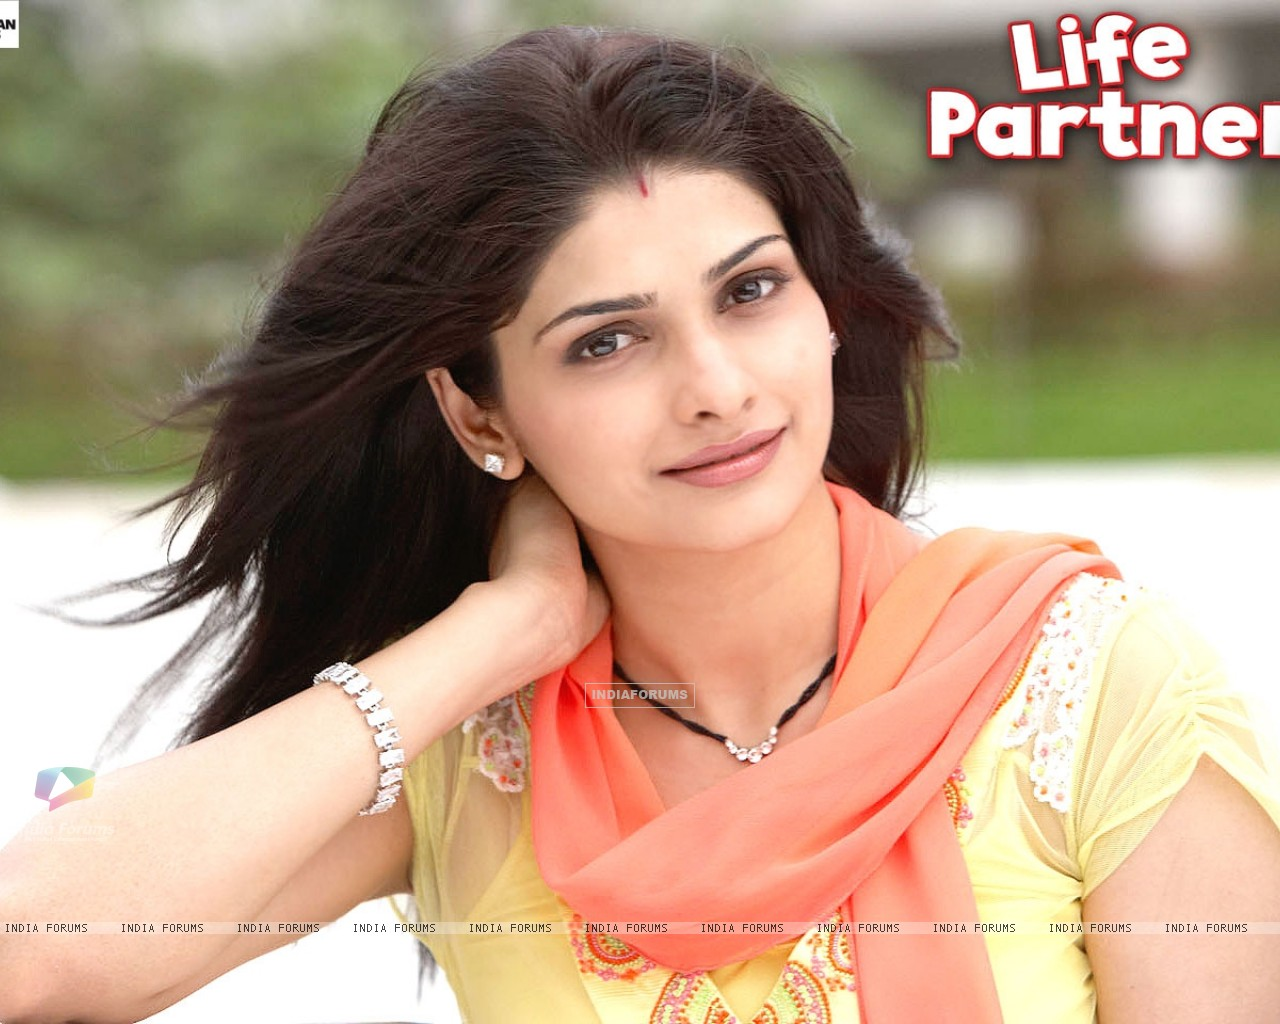 Prachi Desai wallpaper from the movie Life Partner (31440) size:1280x1024